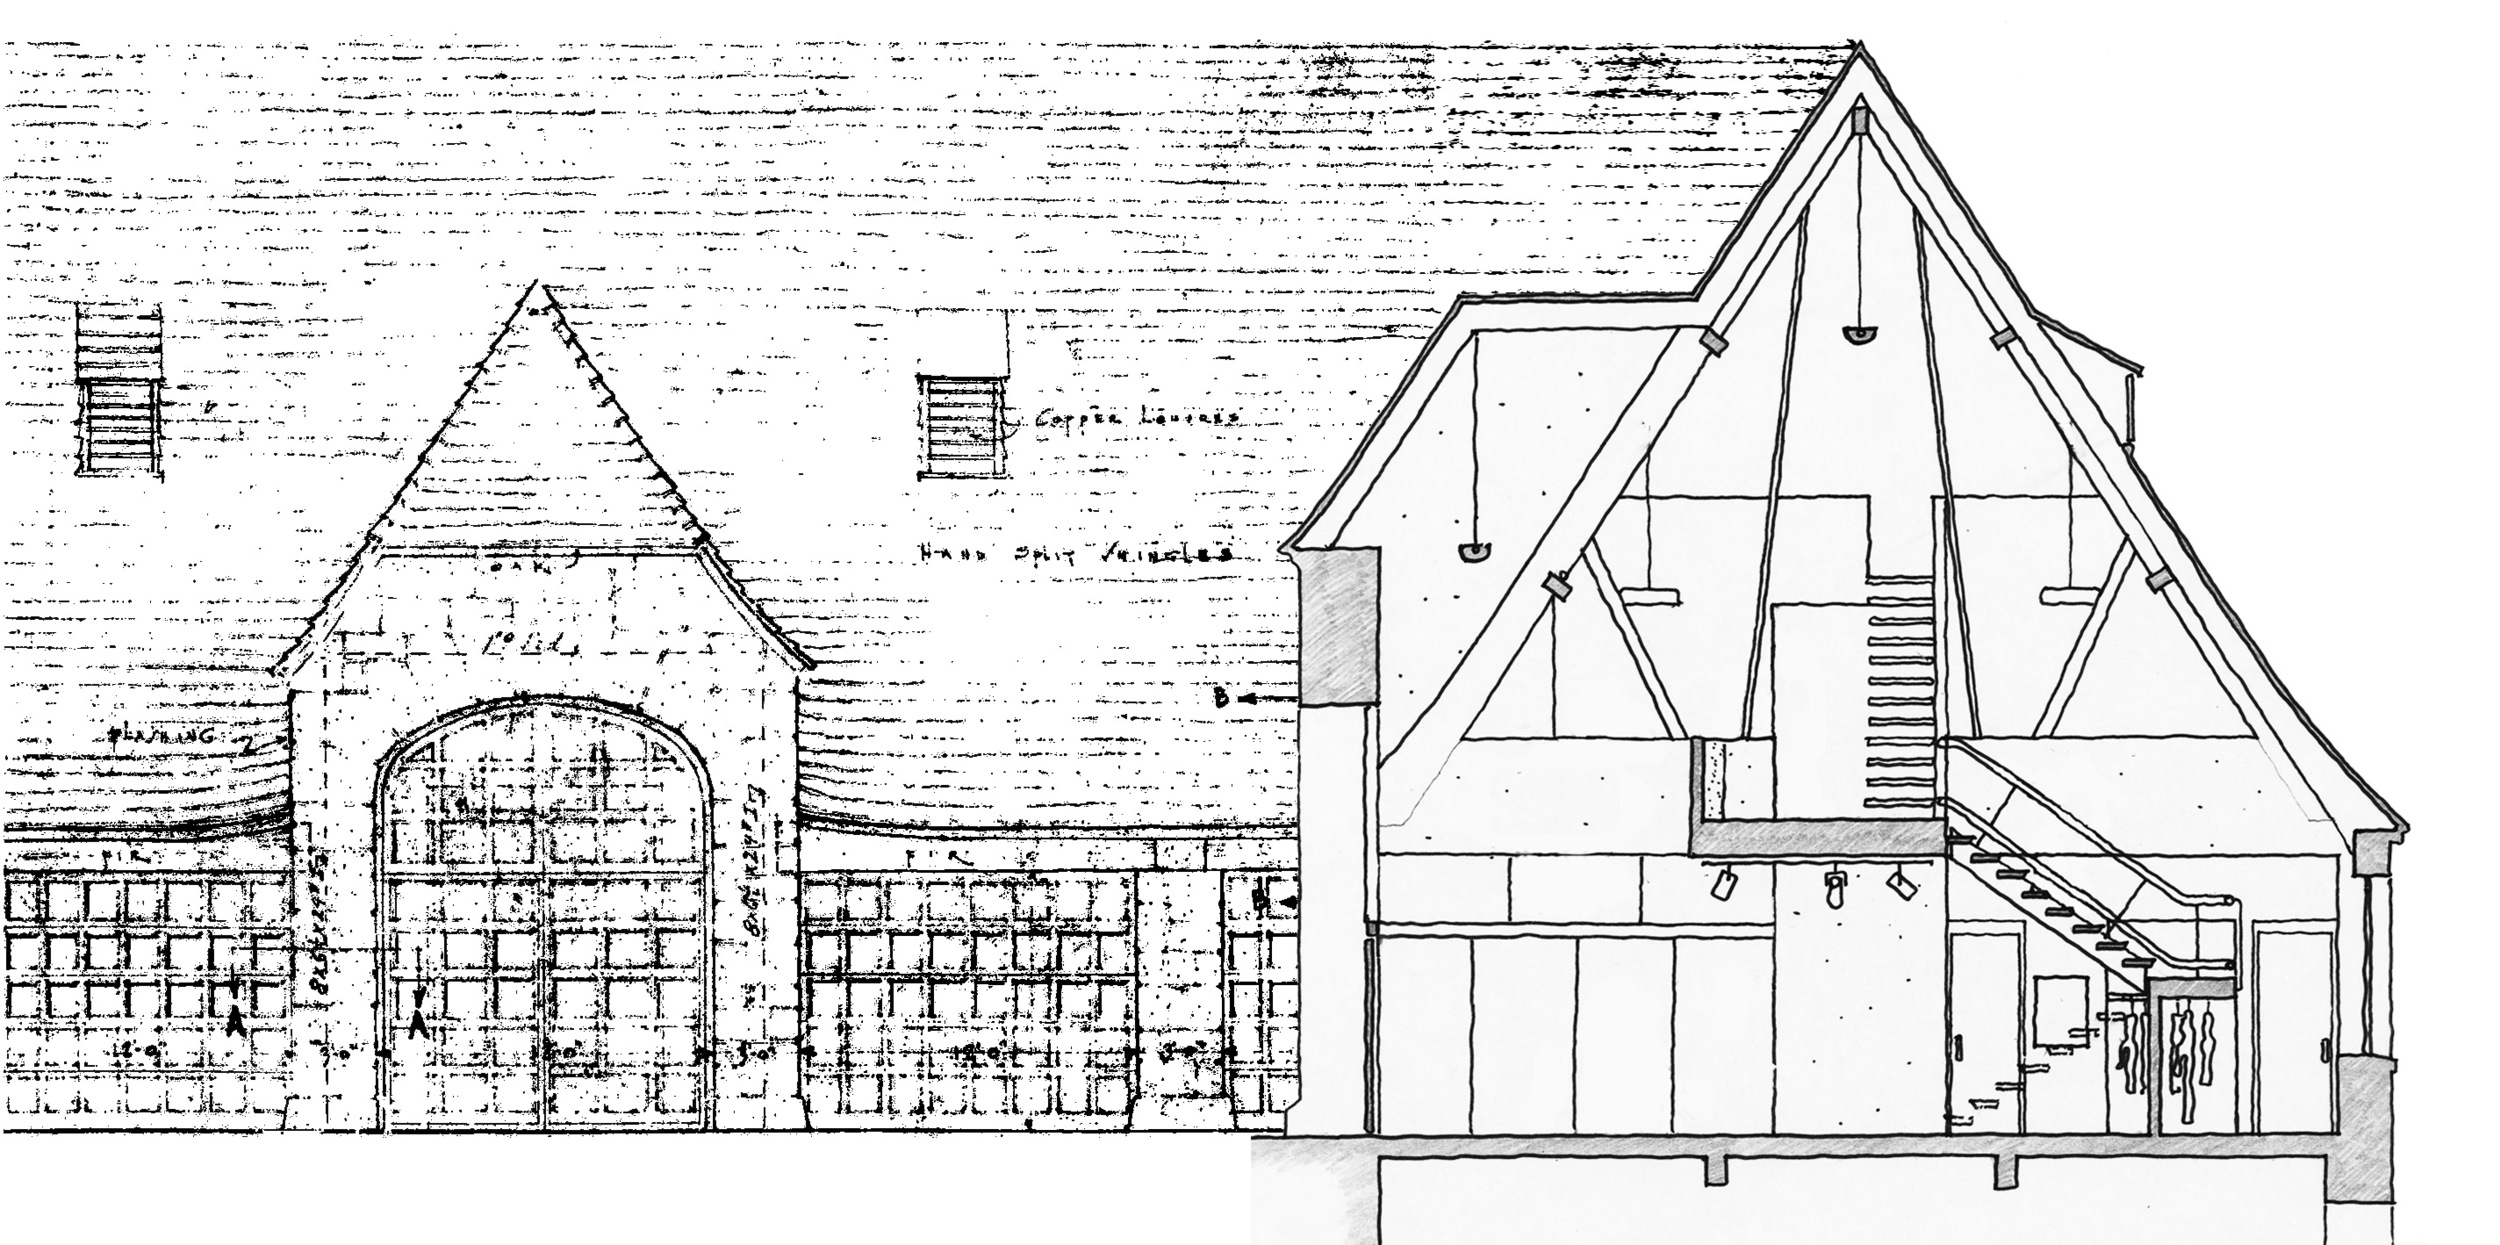 elevation drawingsection.jpg